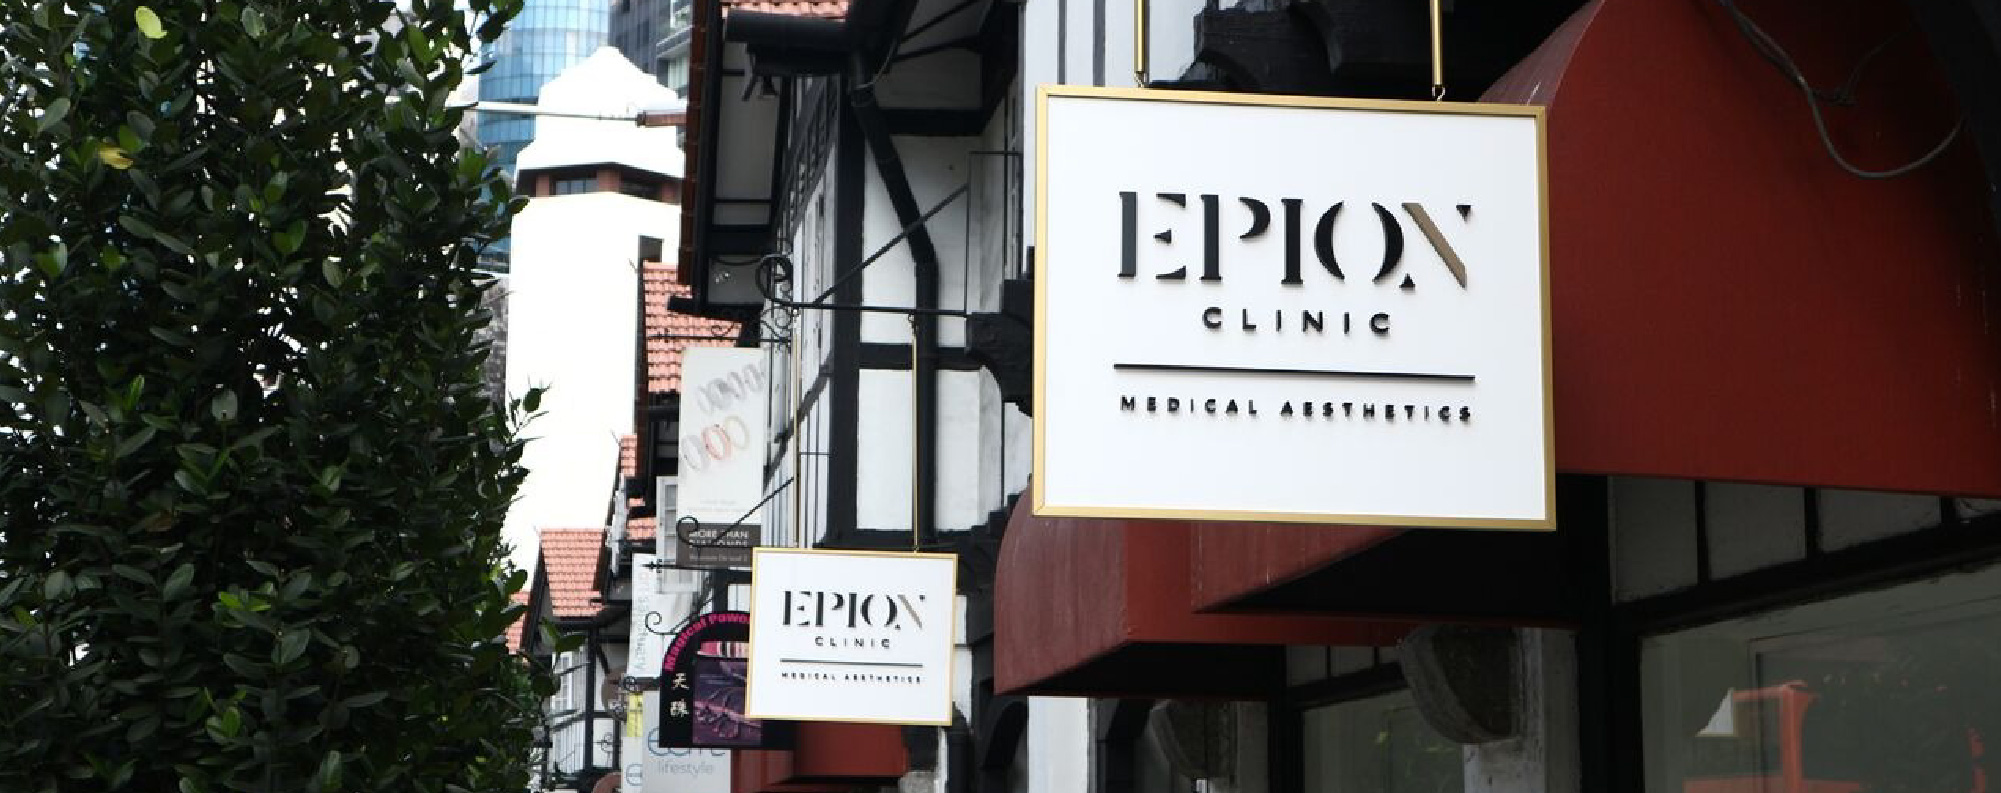 Epion Clinic Aesthetic Laser Clinic Singapore Contact Us